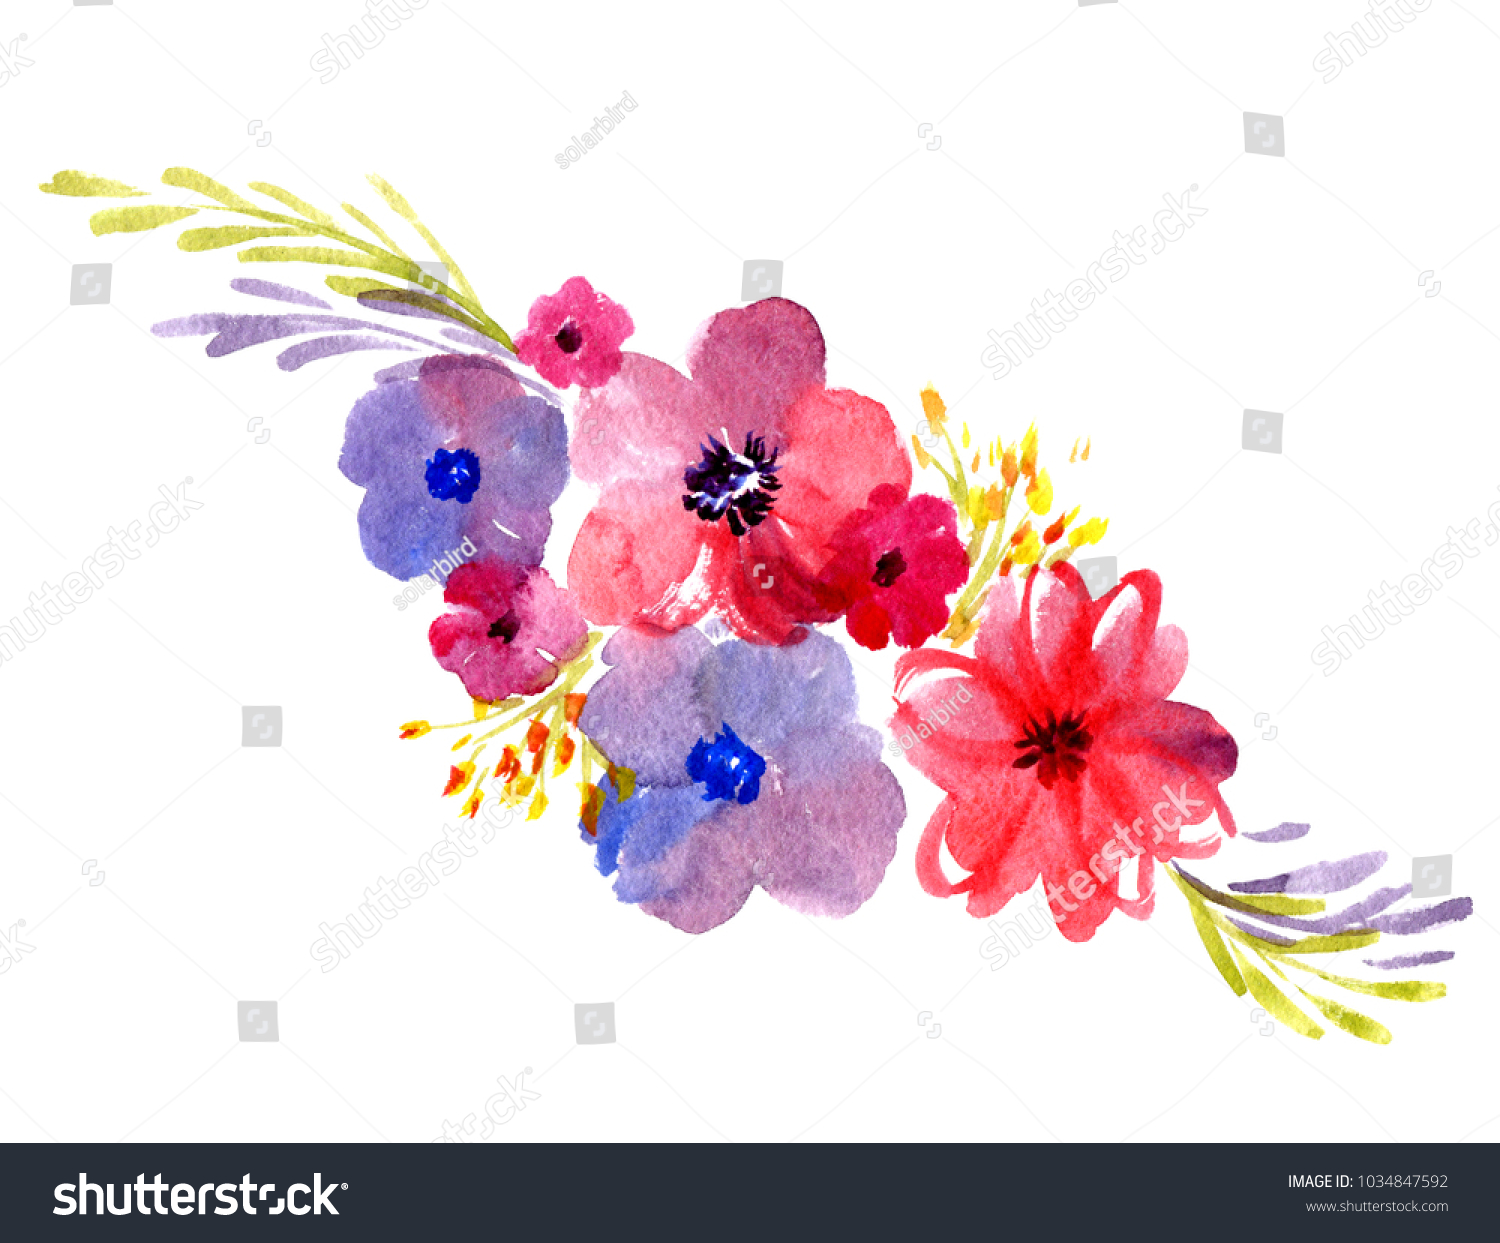 Royalty Free Stock Illustration Of Bouquet Delicate Watercolor